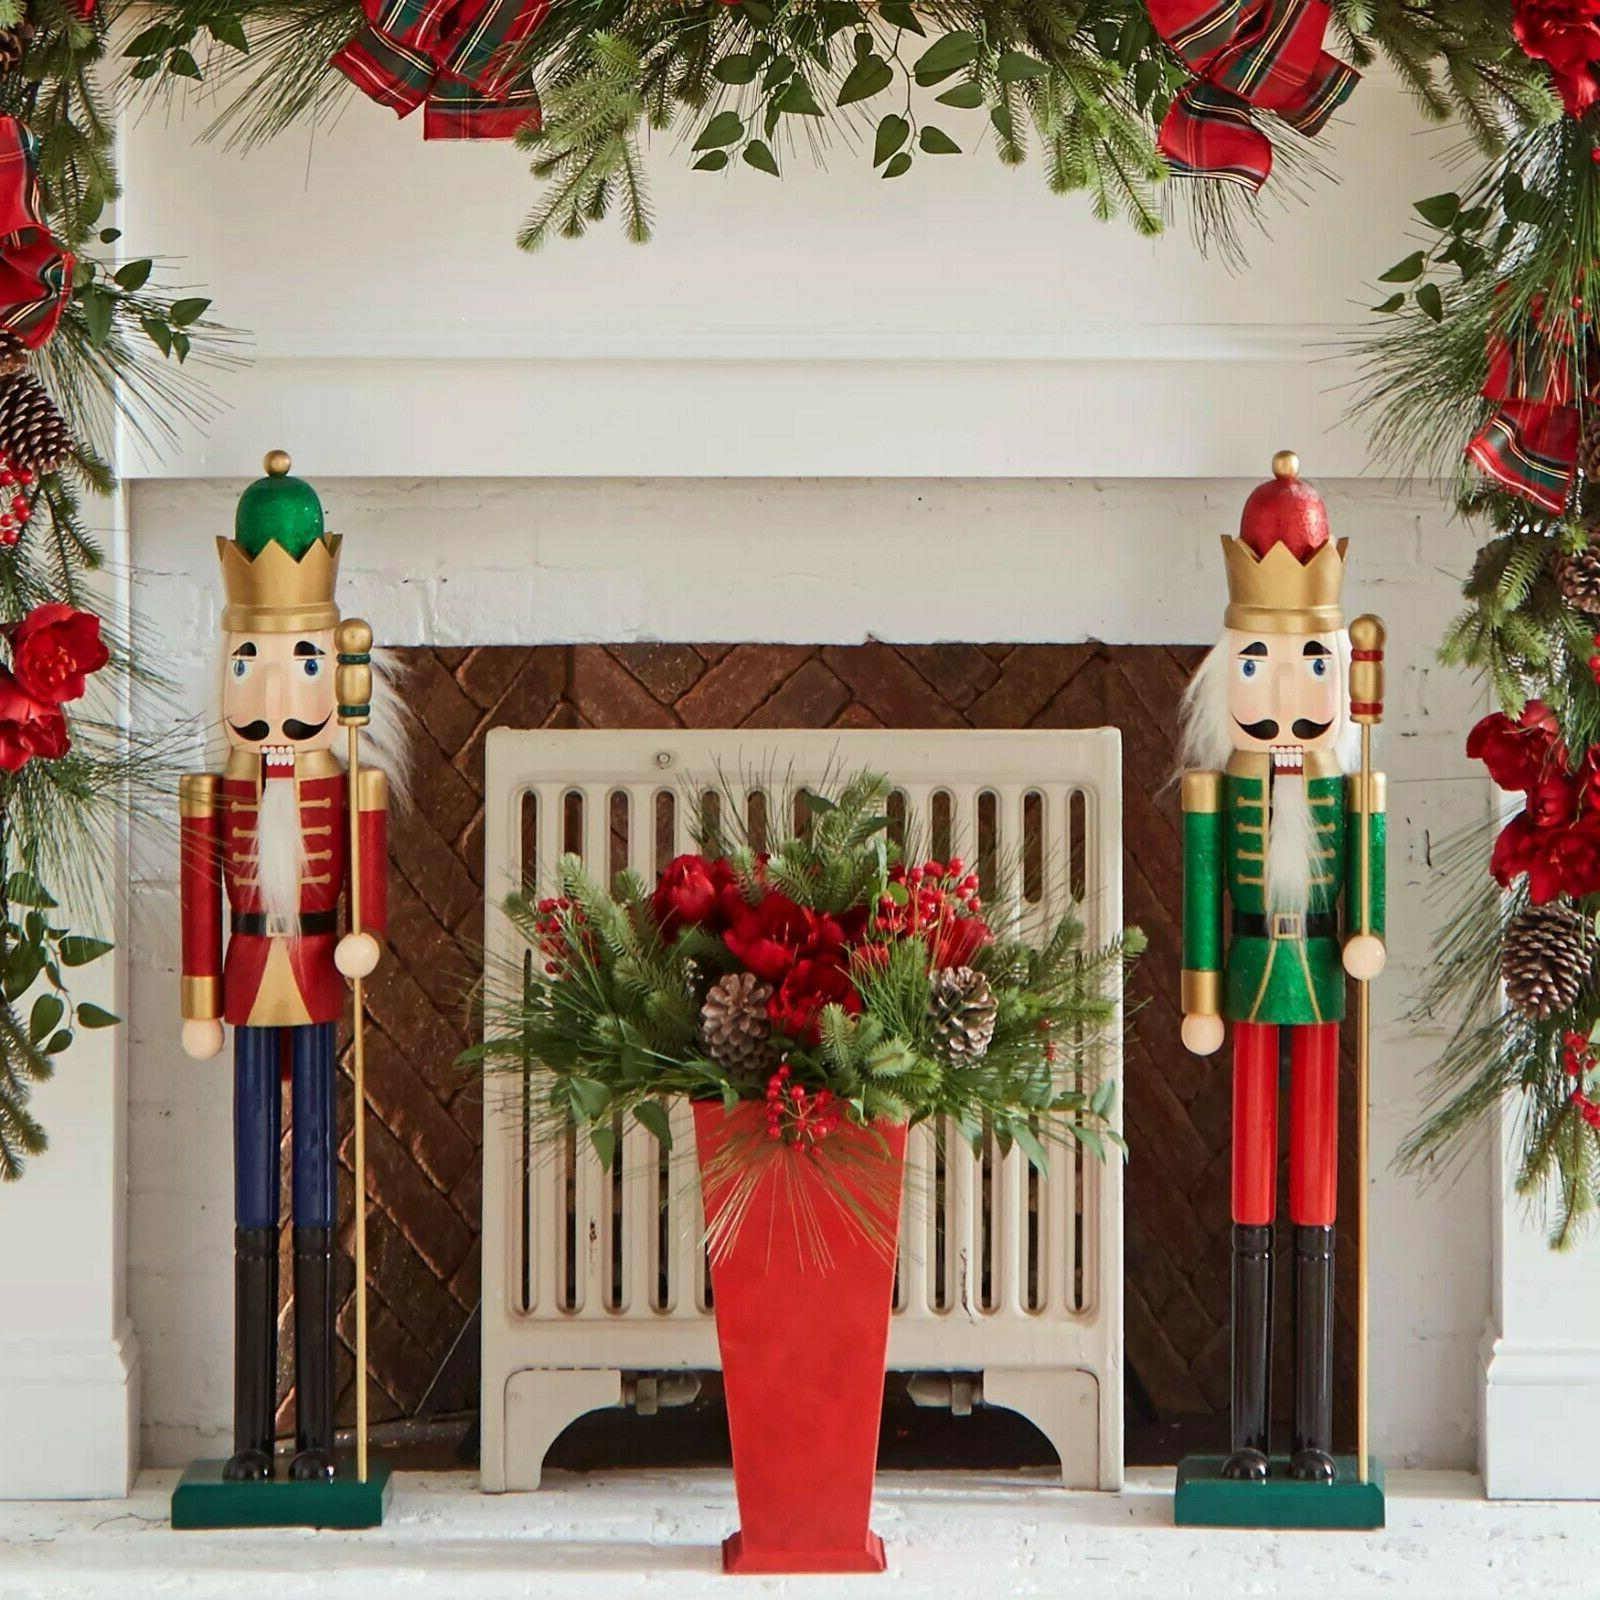 Nutcracker Christmas Toy Soldier 36 Inches Set of 2 Yard Pat